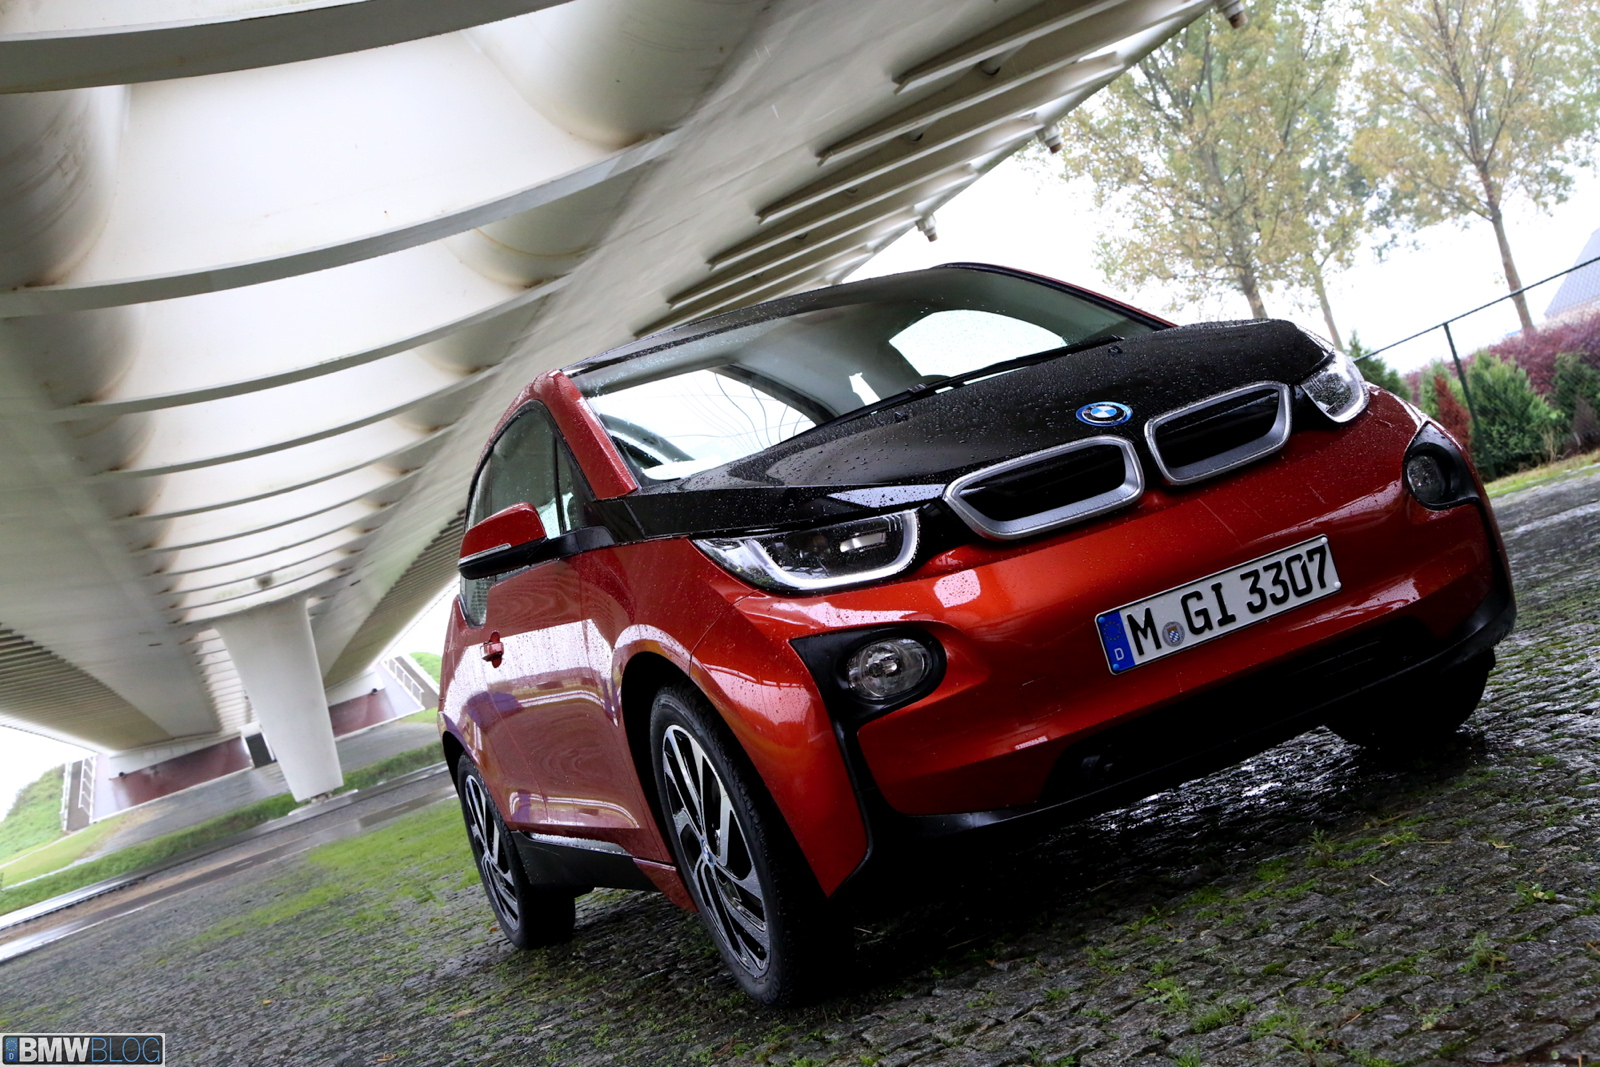 First Drive Review Bmw I3 Vehicle Electrical System Control Units Location Shawn Molnar Bmwblog 50 655x436